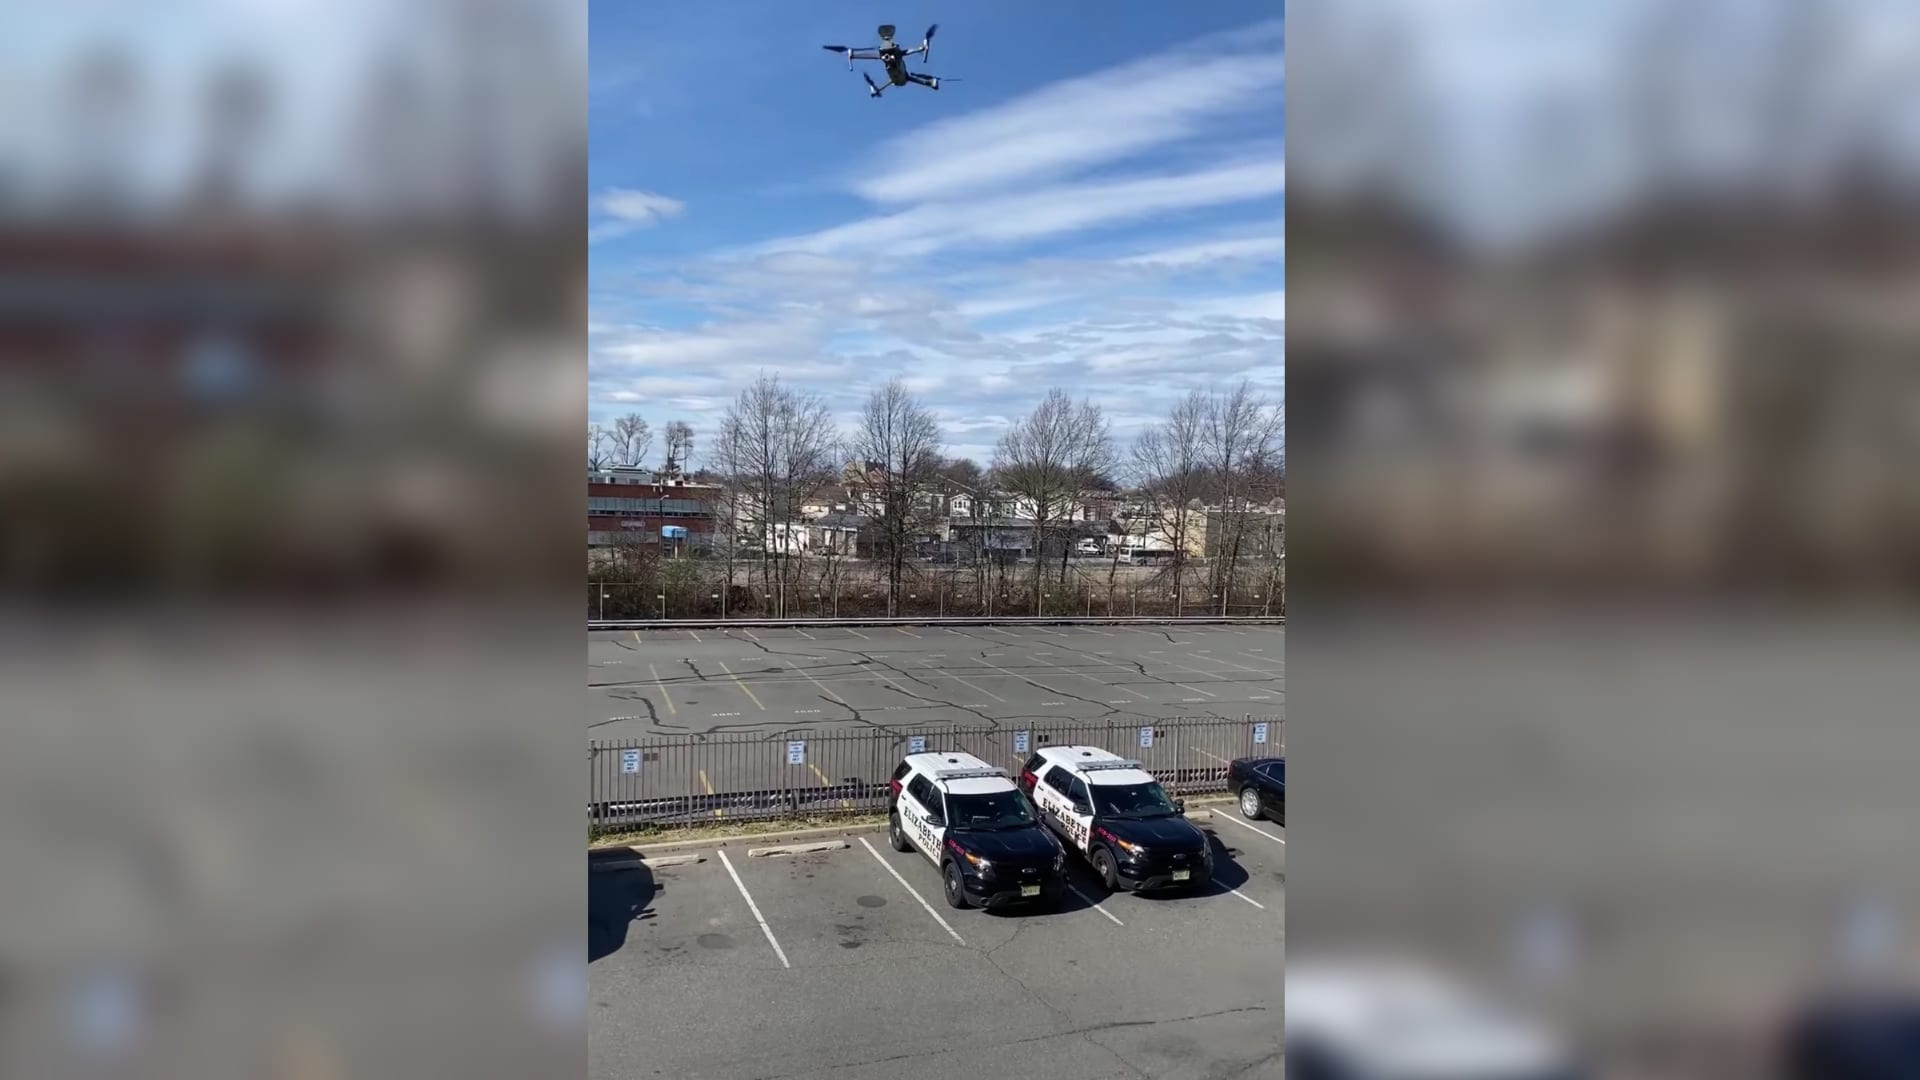 Elizabeth Police Department receives five DJI Mavic 2 Enterprise drones